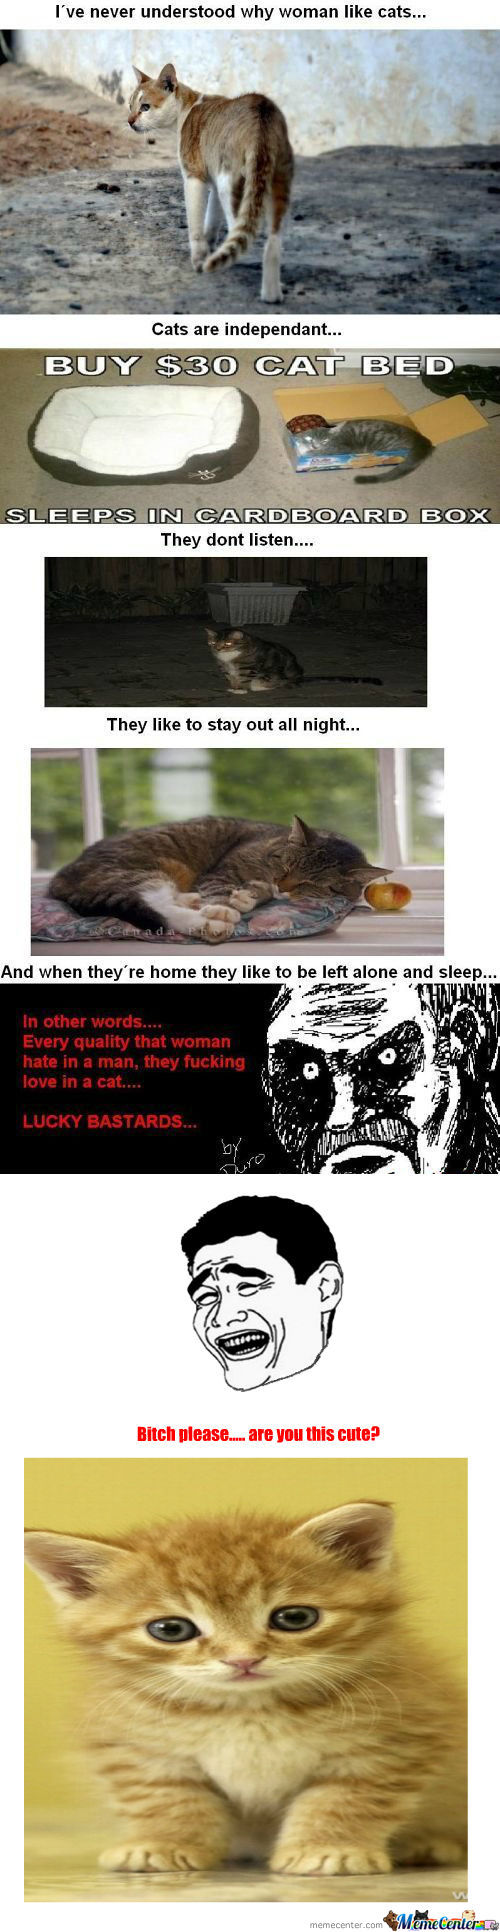 [RMX] Never Understood Why Woman Like Cats....